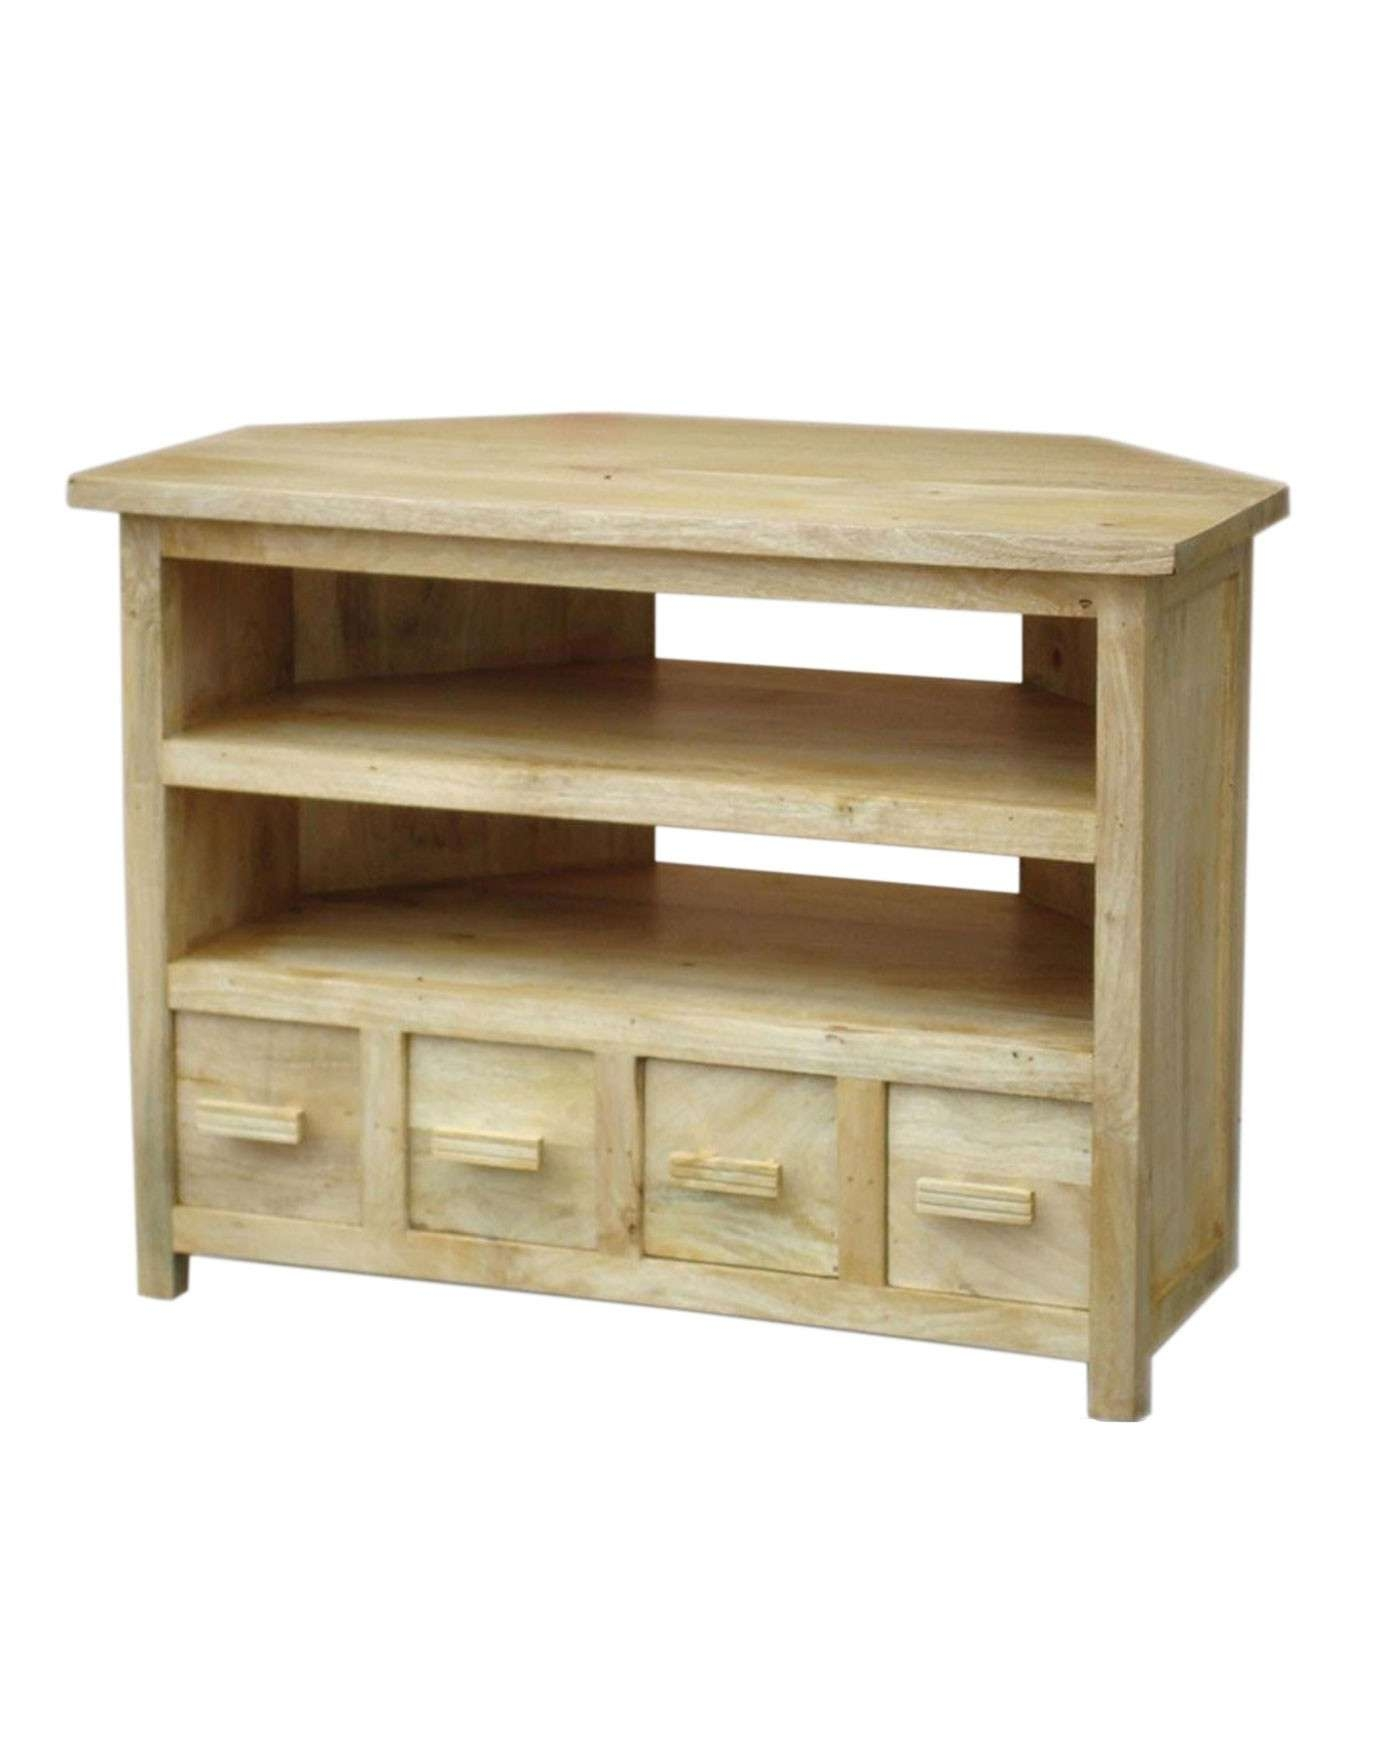 Mangat Tall Corner Tv Unit Oak Shade – Homescapes Intended For Wooden Corner Tv Cabinets (View 16 of 20)